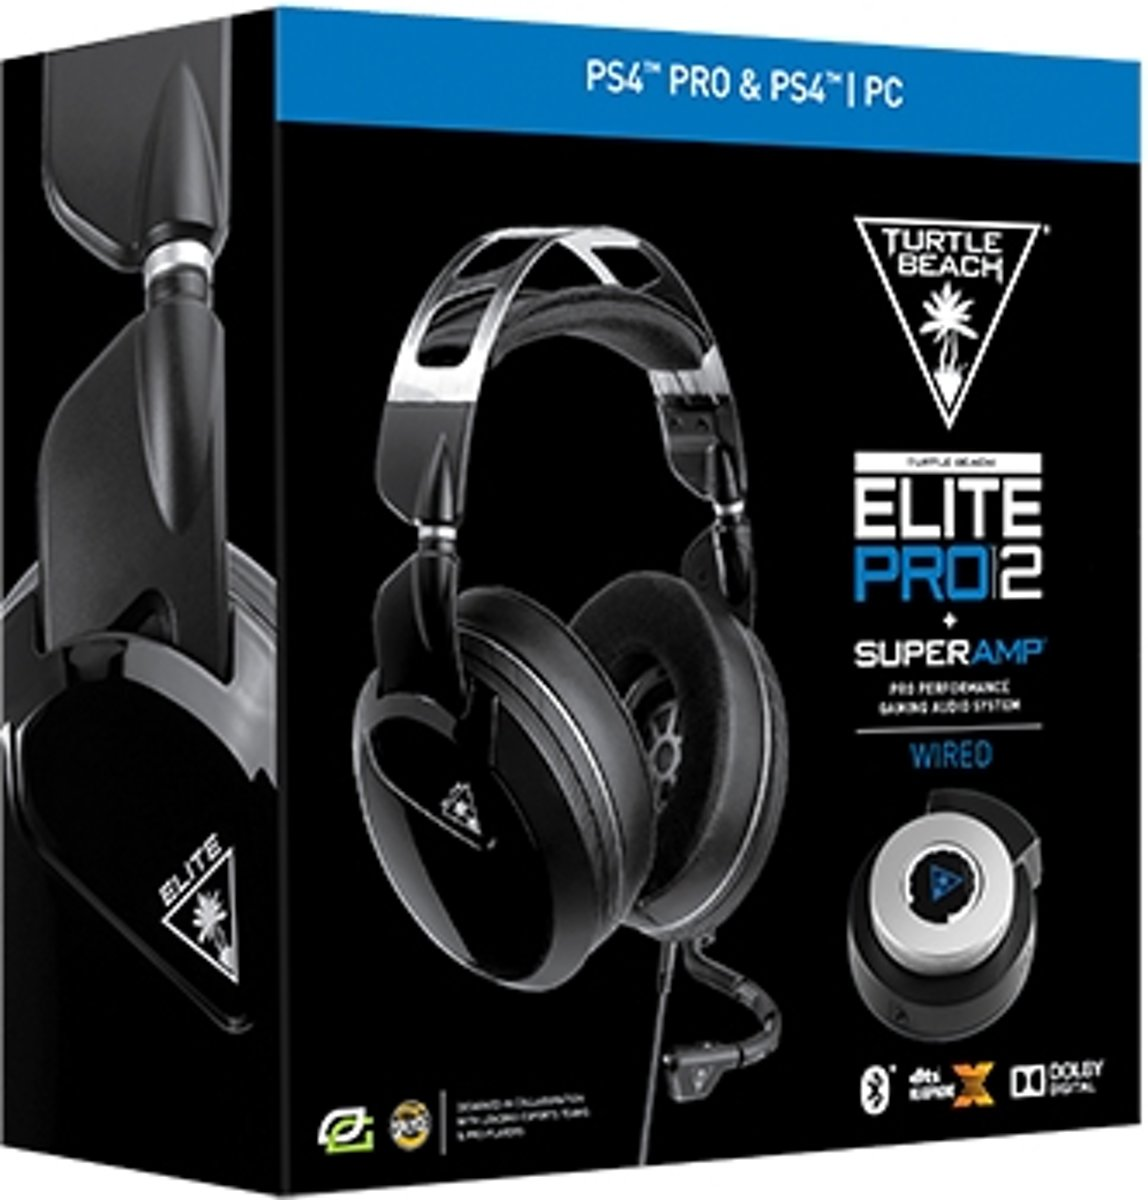 Turtle Beach Elite Pro 2 & Super AMP - PS4, PS4Pro, PC